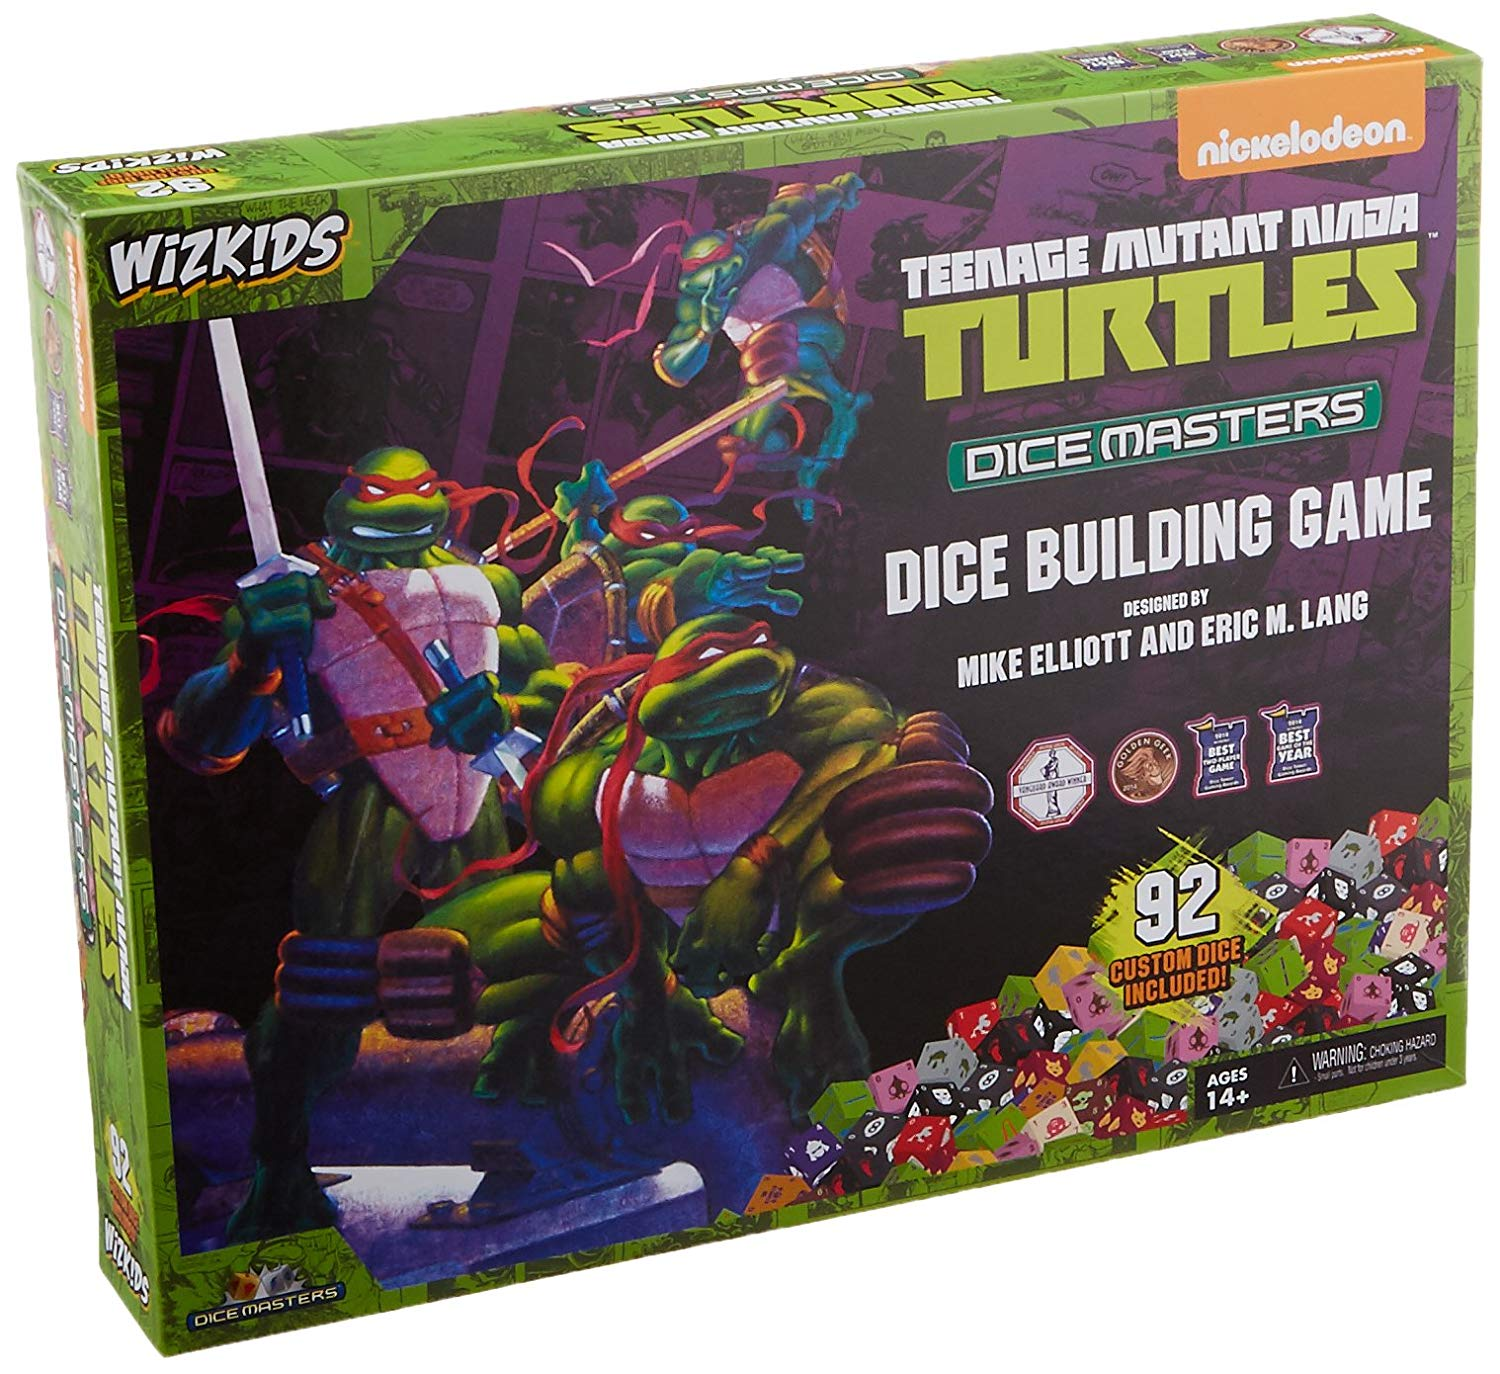 TMNT Dice Masters: Dice Building Game